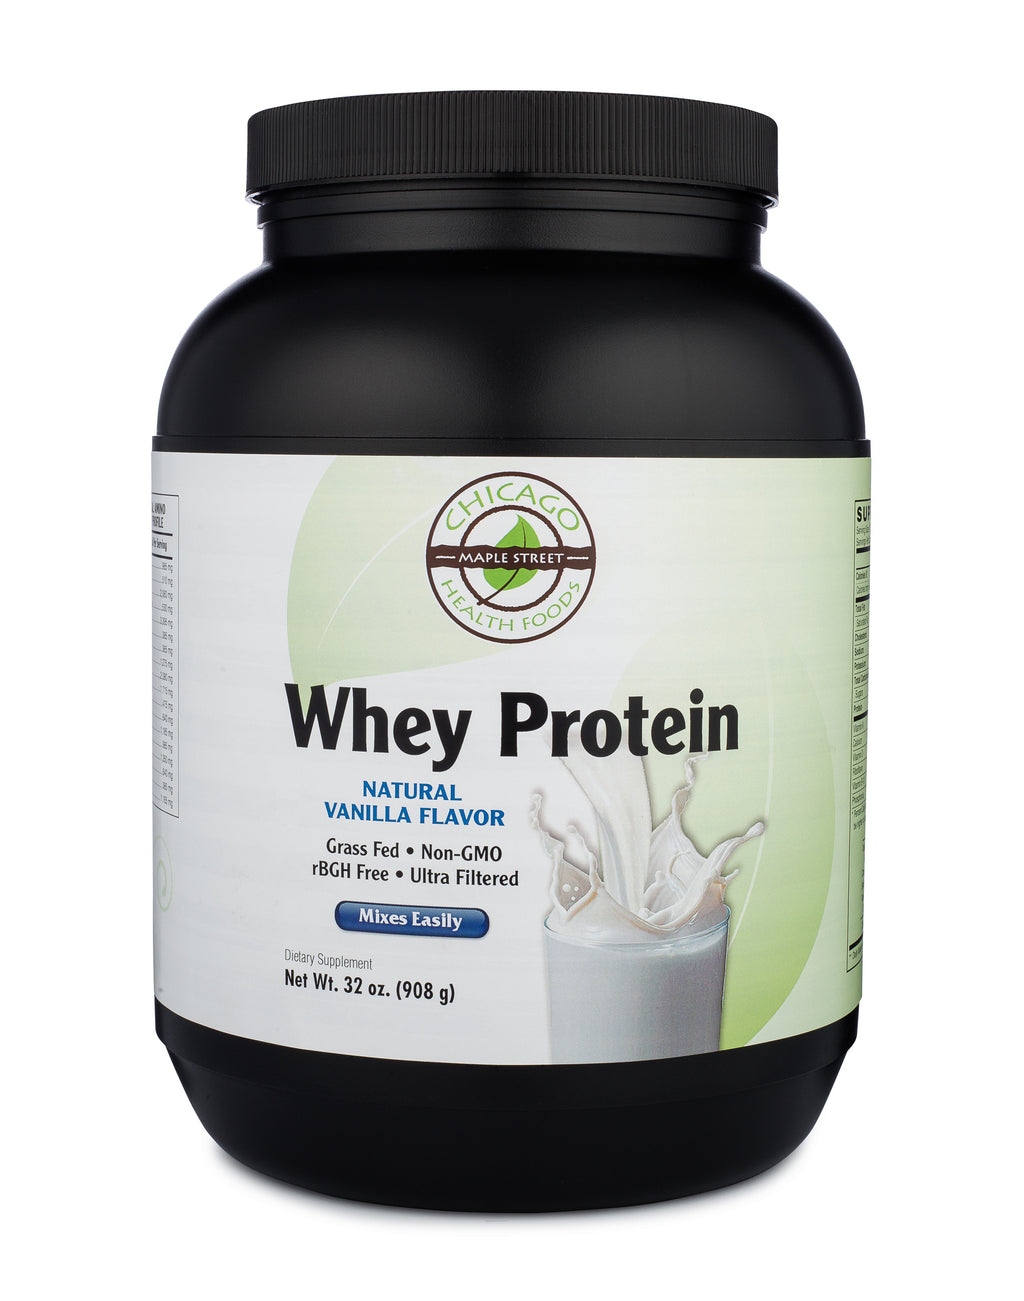 Whey protein vanilla-12oz-supplement-Chicago-Health-Foods.jpg